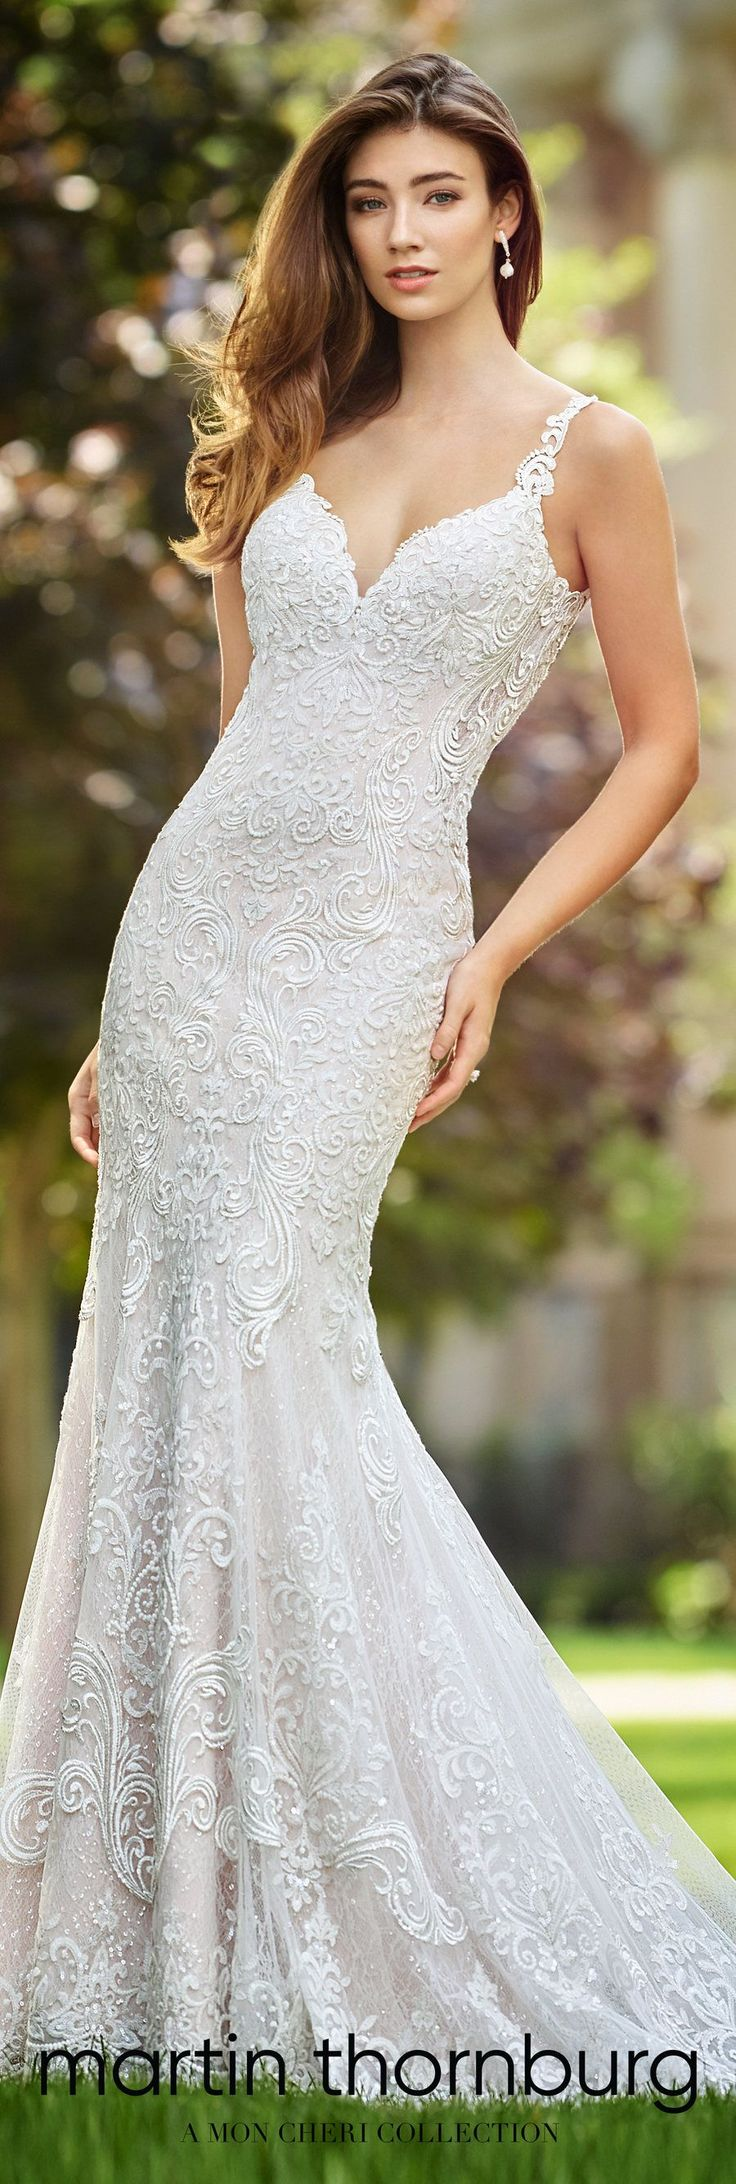 best nwj love list images on pinterest marriage brides and